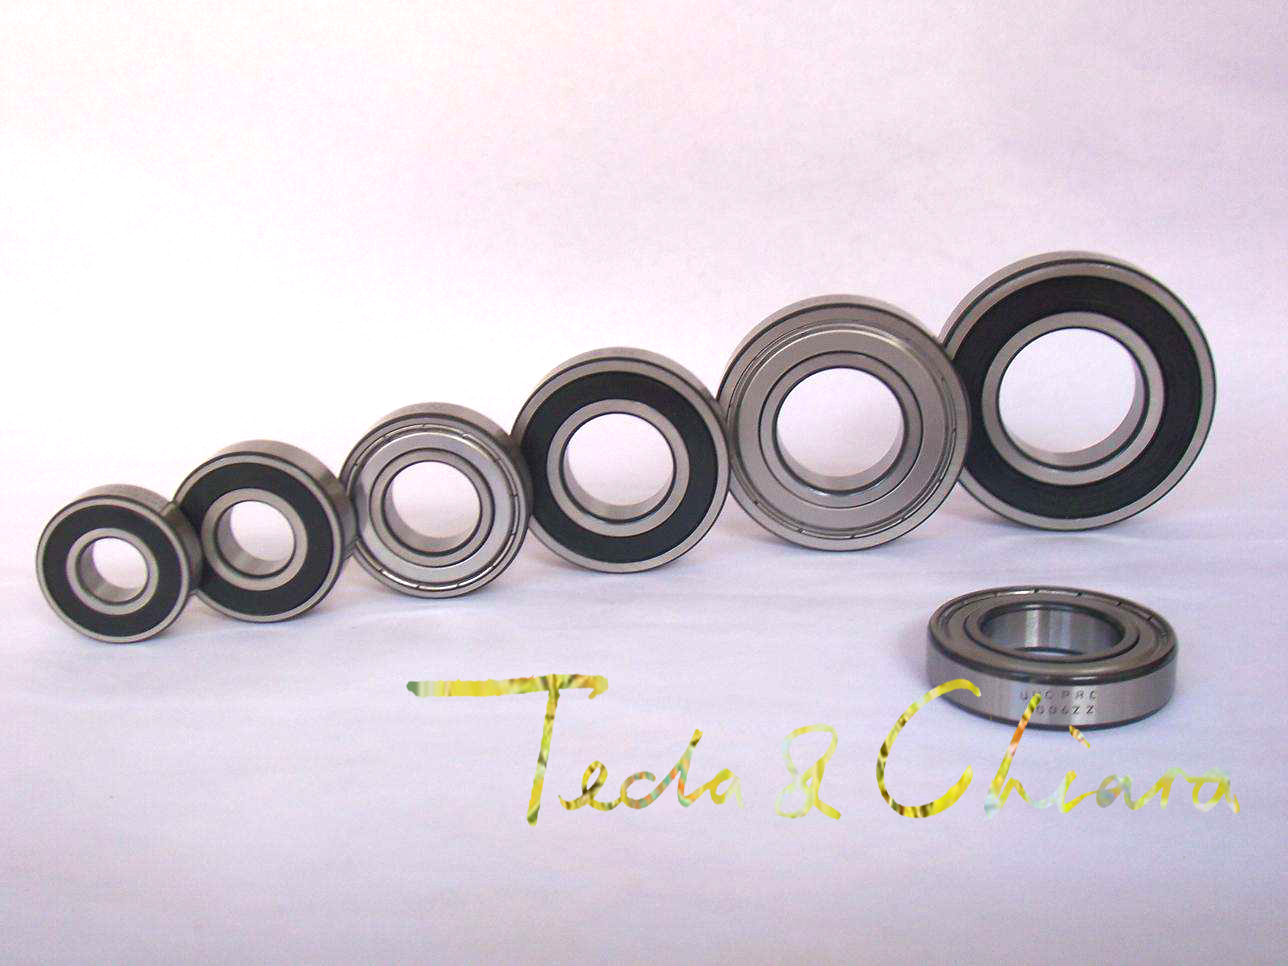 695 695ZZ 695RS 695-2Z 695Z 695-2RS ZZ RS RZ 2RZ Deep Groove Ball Bearings 5 x 13 x 4mm High Quality 604 604zz 604rs 604 2z 604z 604 2rs zz rs rz 2rz deep groove ball bearings 4 x 12 x 4mm high quality